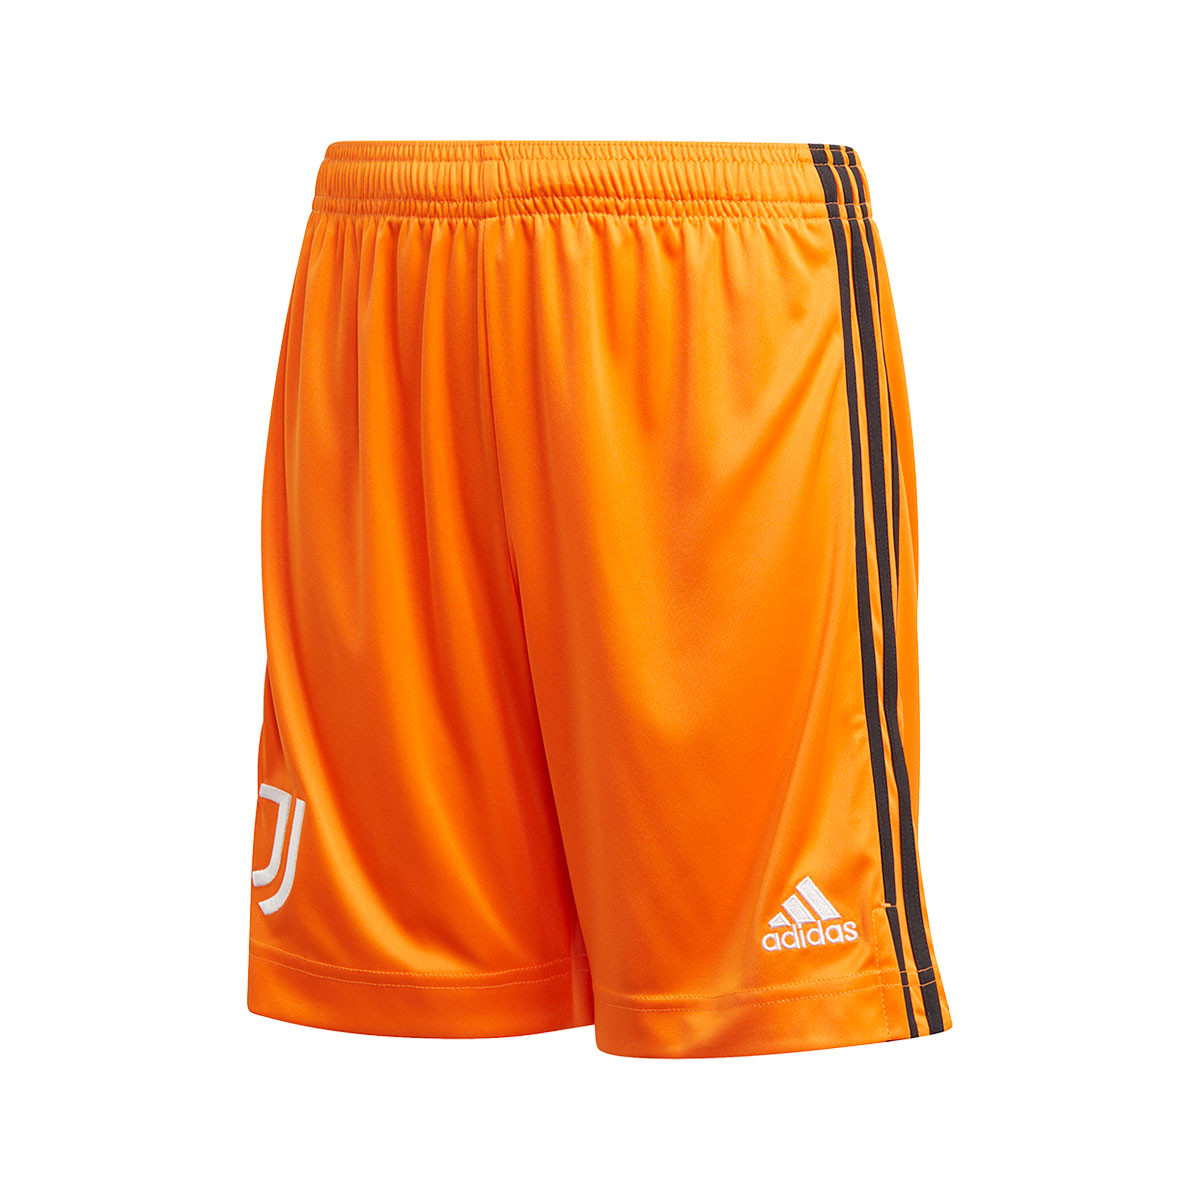 shorts adidas kids juventus 2020 2021 third bahia orange black football store futbol emotion adidas kids juventus 2020 2021 third shorts